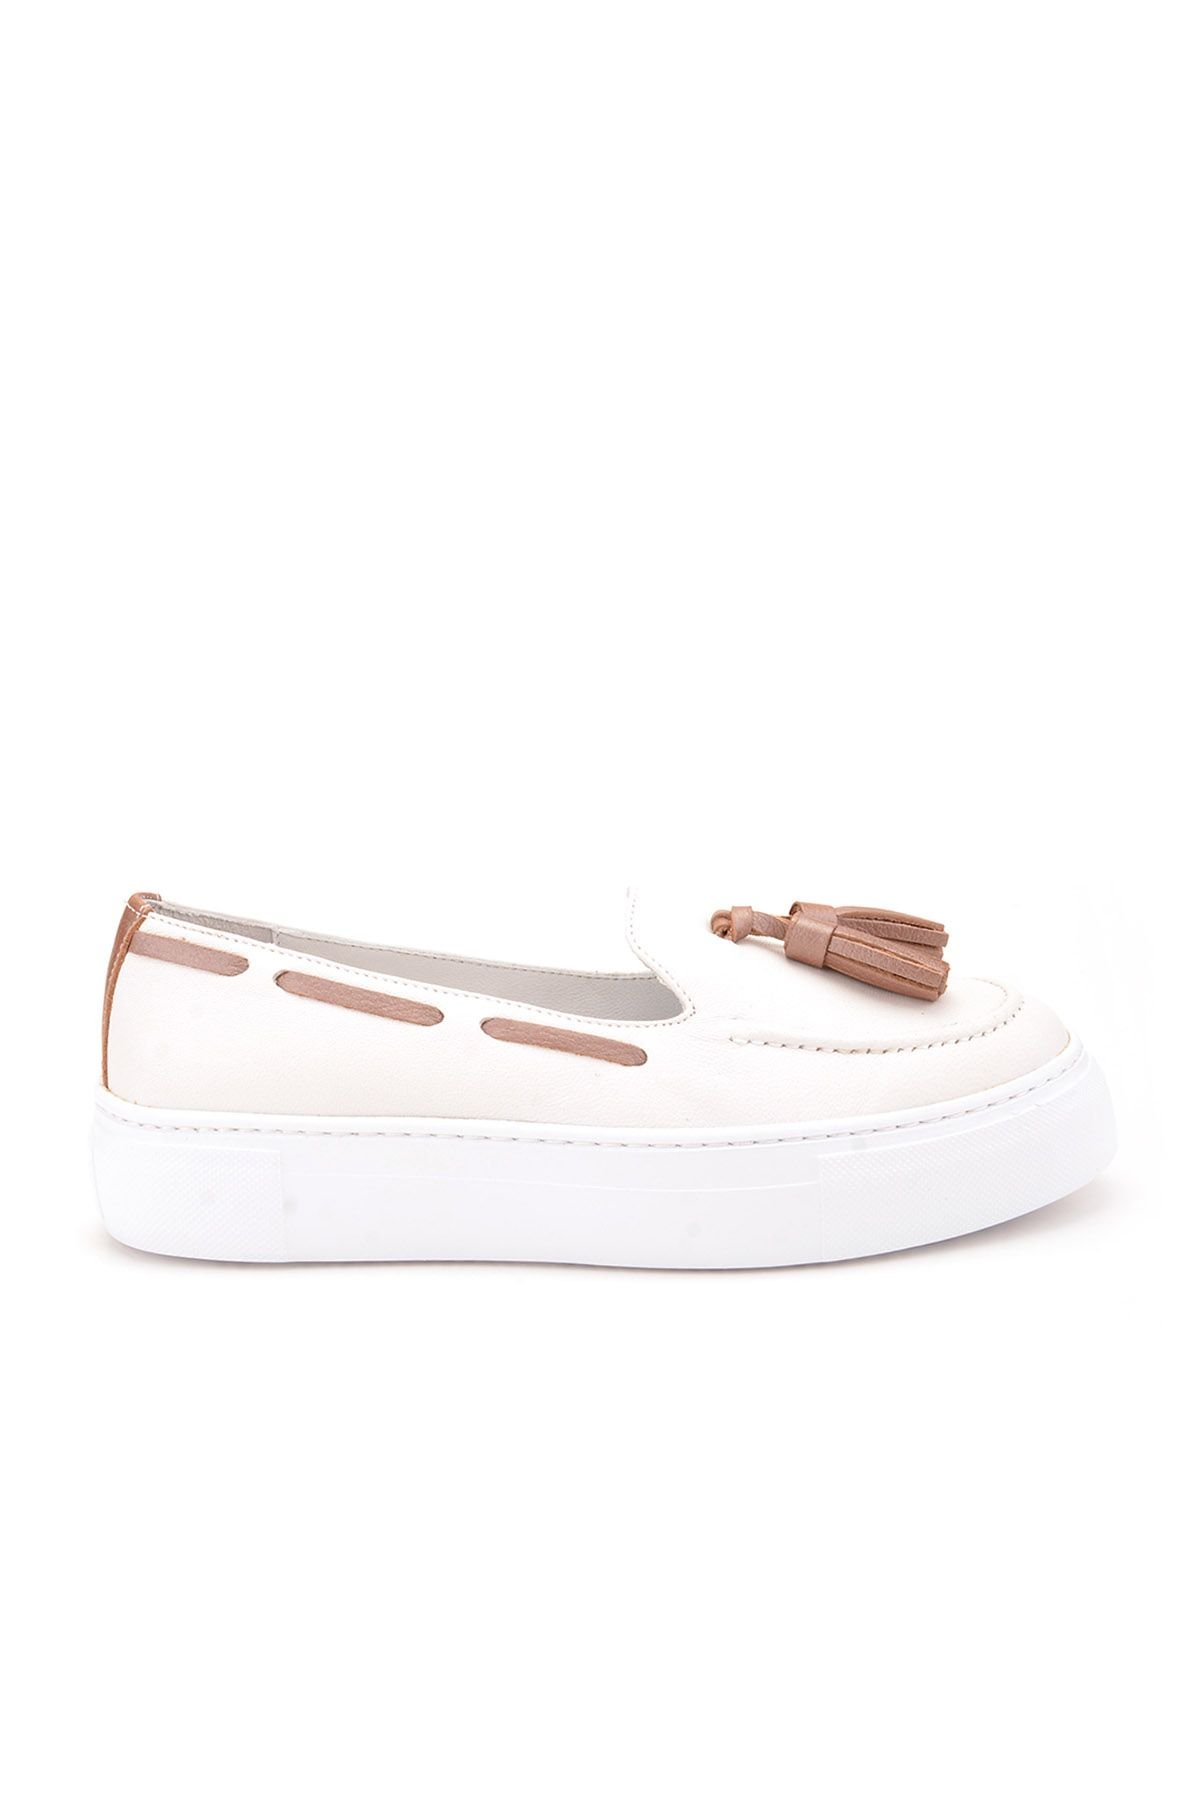 Pegia Pernety Casual Shoes From Genuine Leather REC-010 White